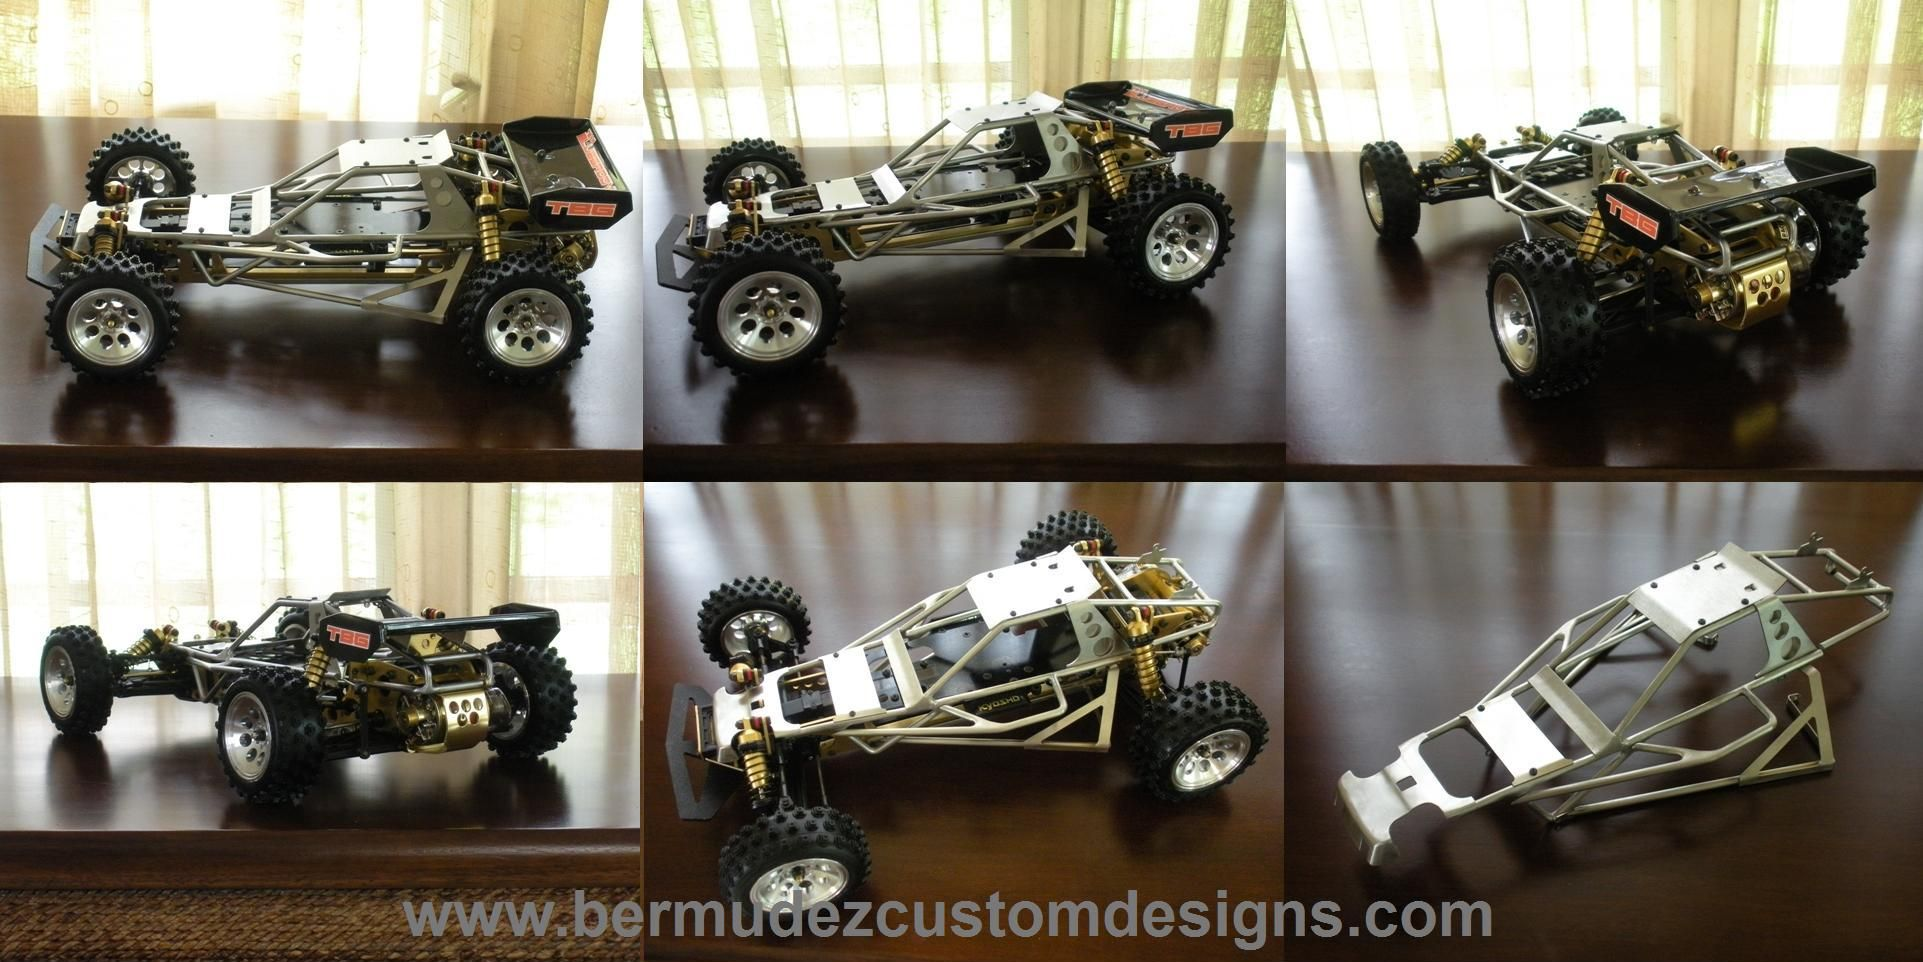 Kyosho Hop Up Parts Rc Cars And Trucks Pinterest Cars